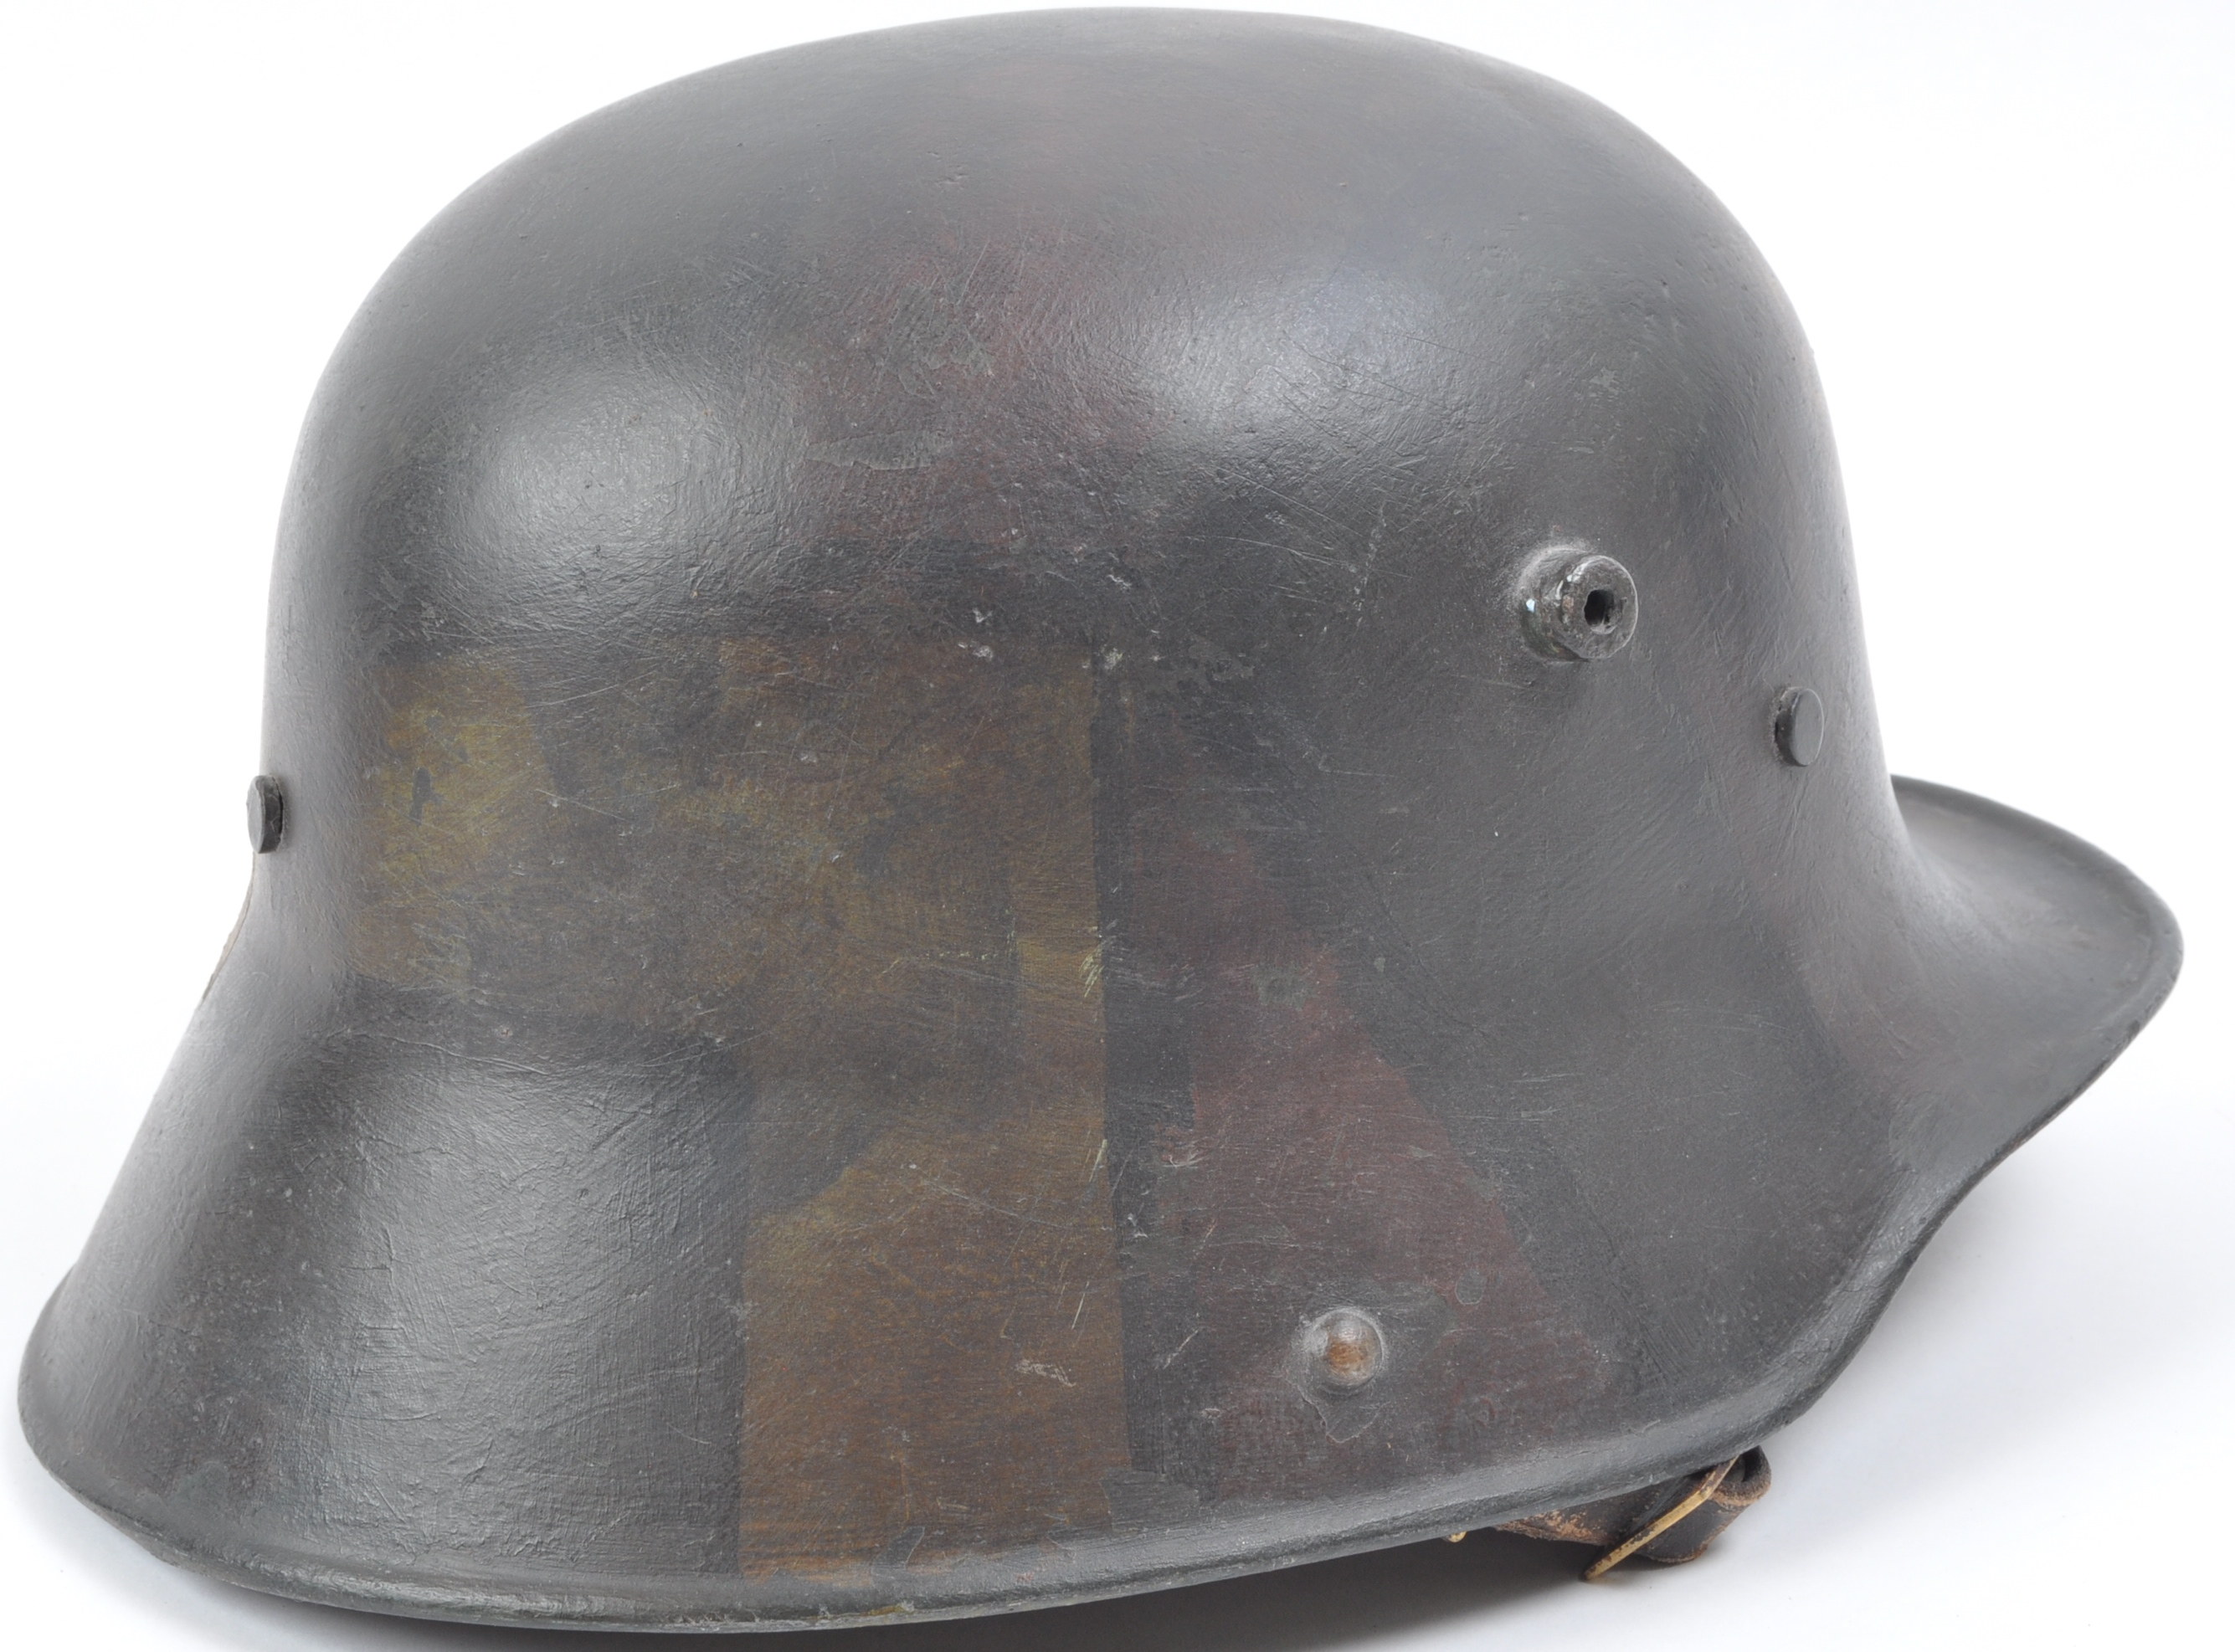 WWI FIRST WORLD WAR M16 CAMOUFLAGE HELMET - Image 4 of 7